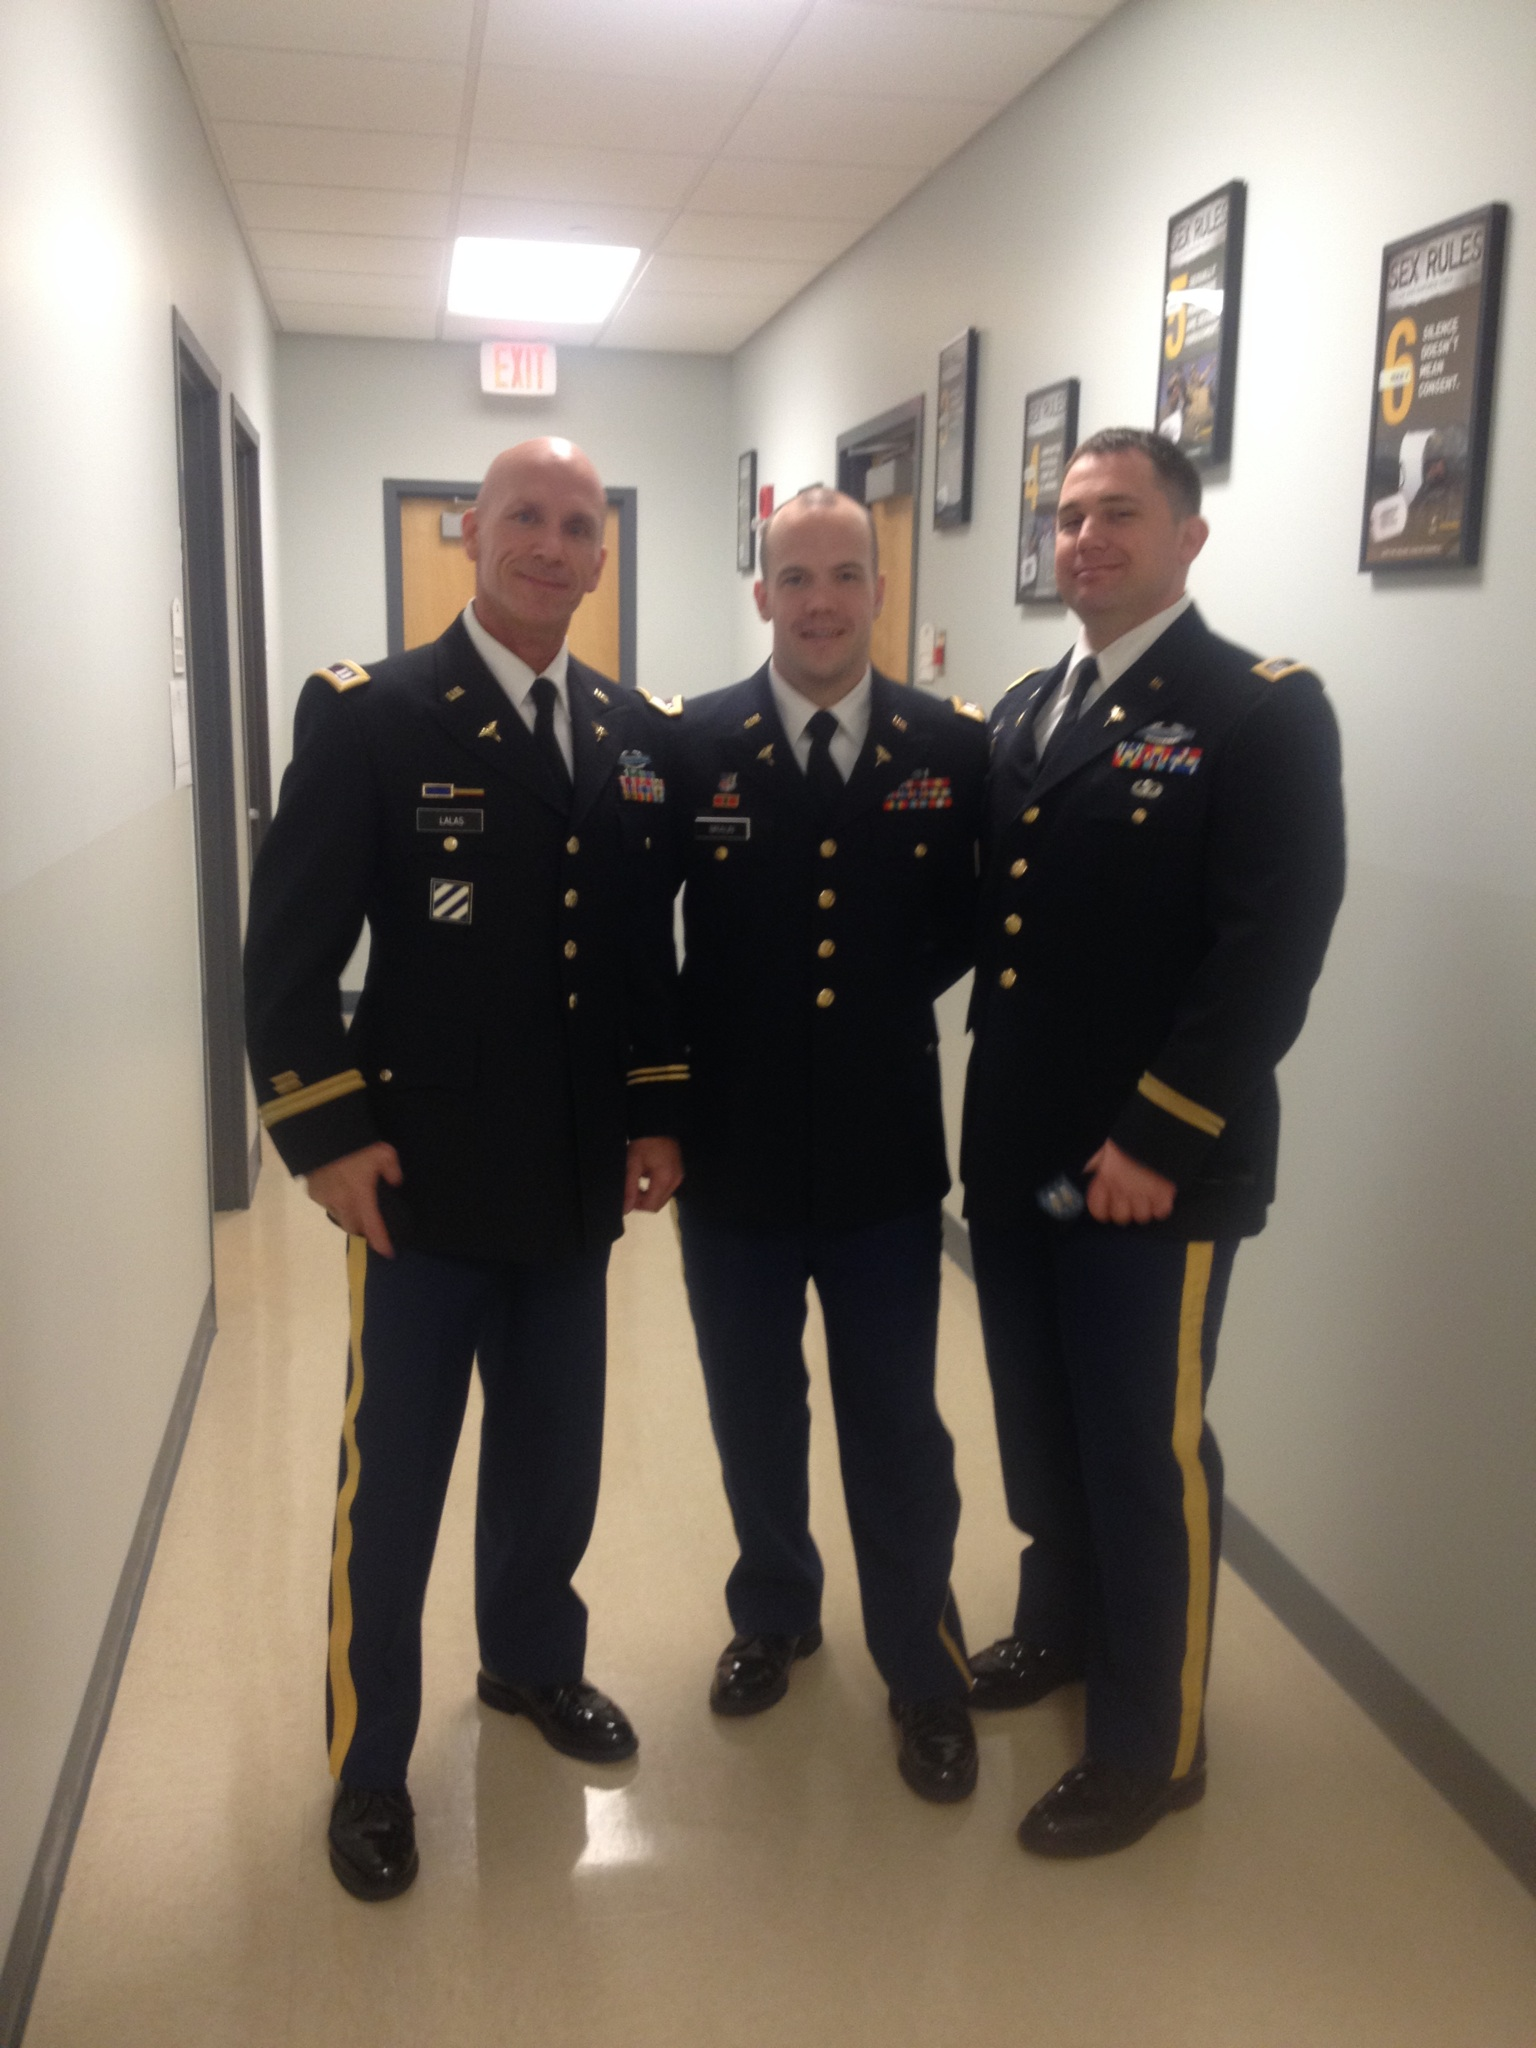 My life long friend Chris (far right) whom I've always called brother. I proudly share he has done 5 tours of duty for his country.